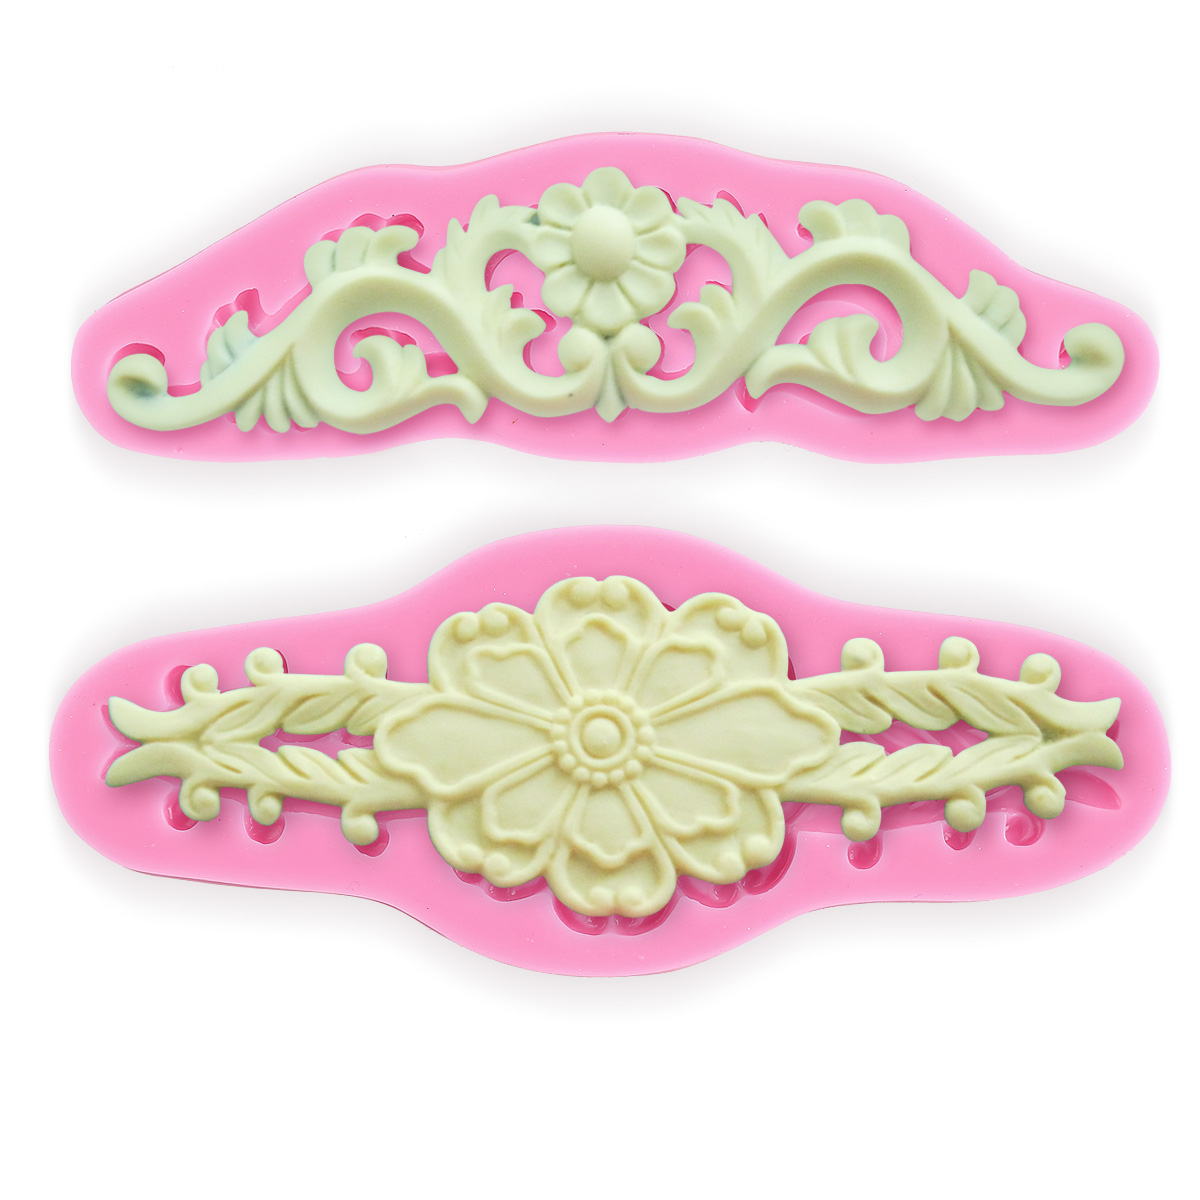 Sugarcraft Moulds,Lace Silicone Mold,Cake Decorating Tool ...